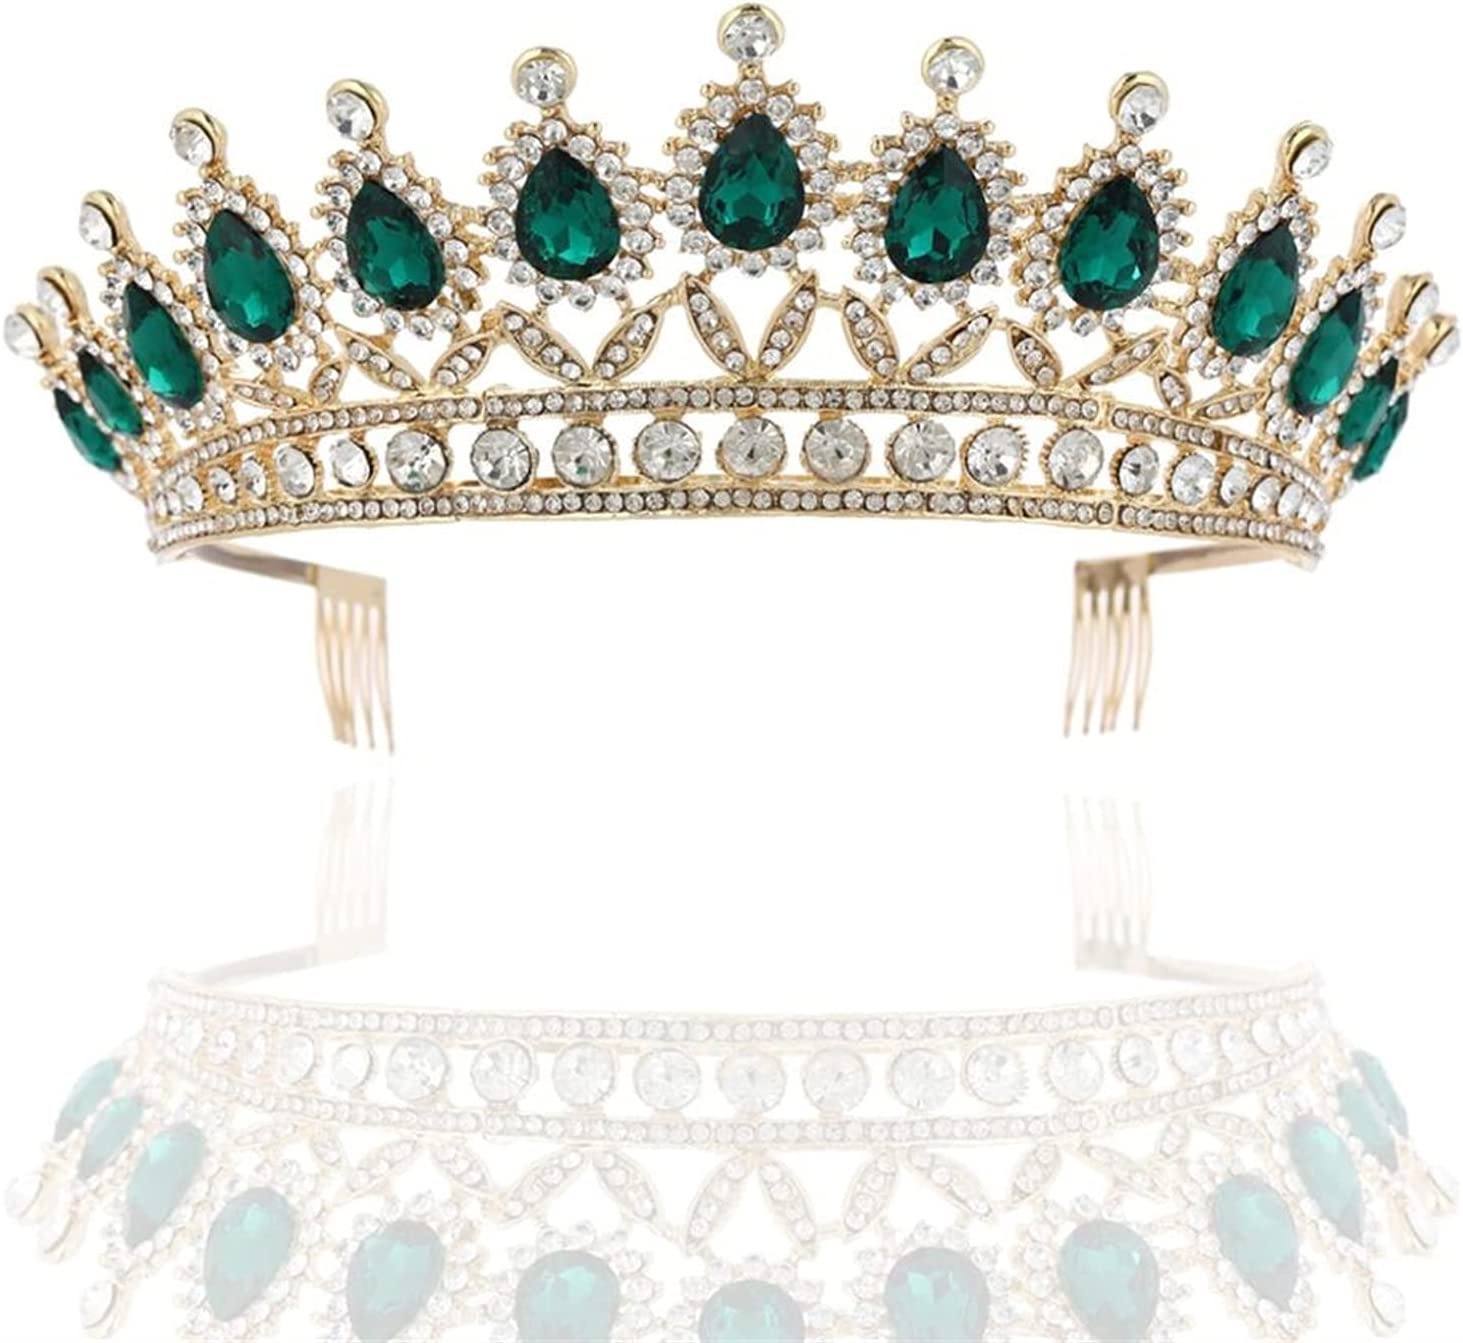 YUANBOO Baroque Crystal Wedding Bridal Jewelry Sets Tiaras Crown Earrings Necklace Bride Women Pageant Prom Jewelry Set Hair Ornaments (Metal Color : 1Pcs Green Crown)